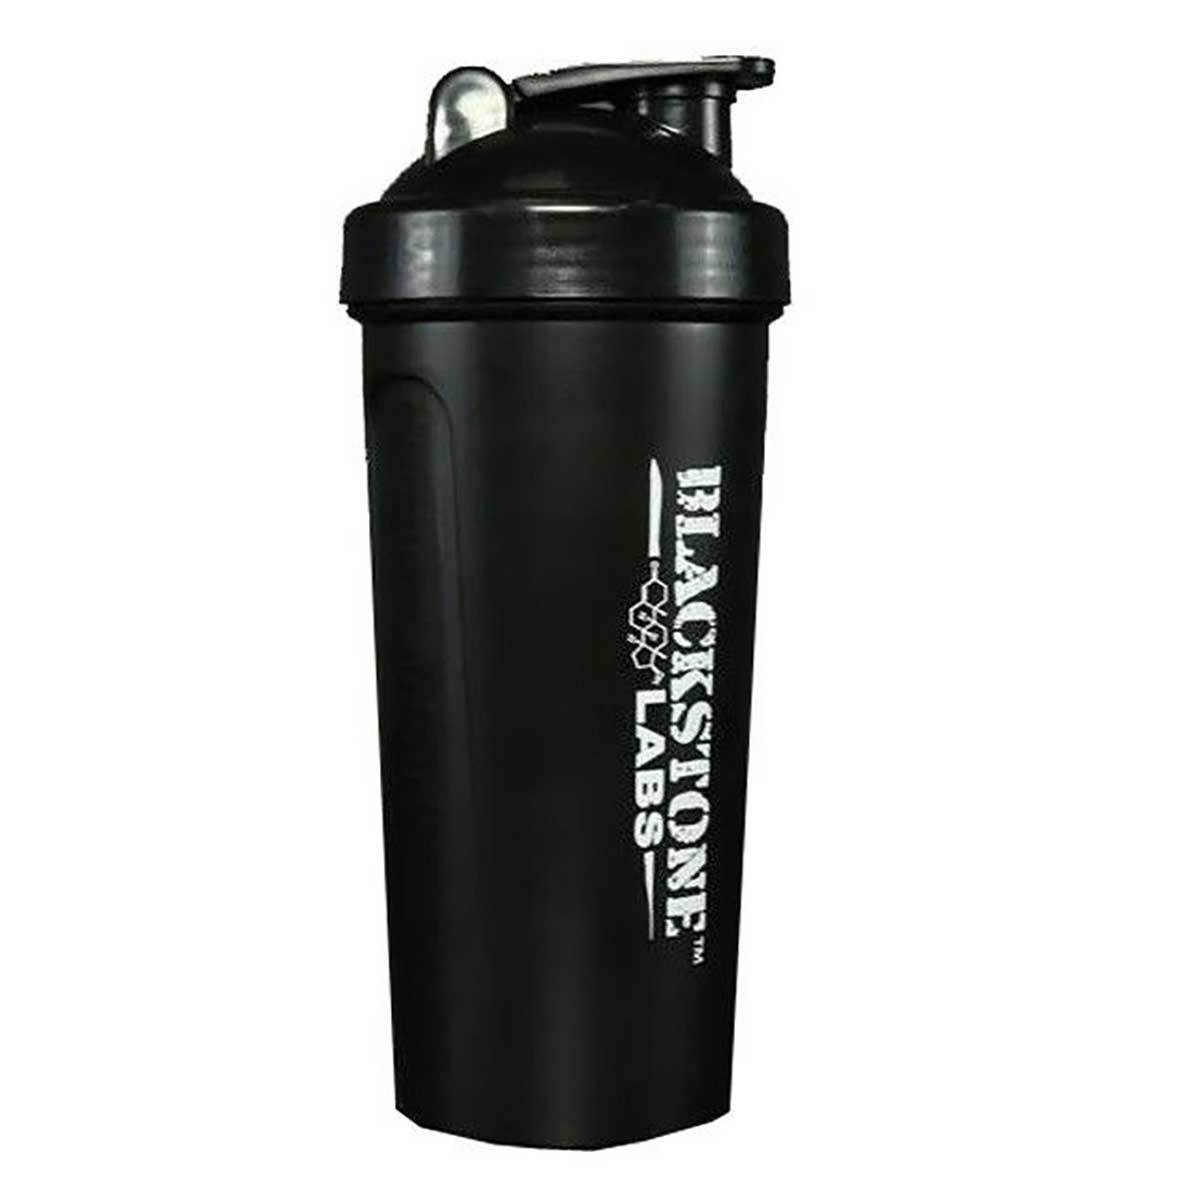 Blackstone Labs 36oz SHAKER Fitness Accessories and Apparel Blackstone Labs  (1059293790251)